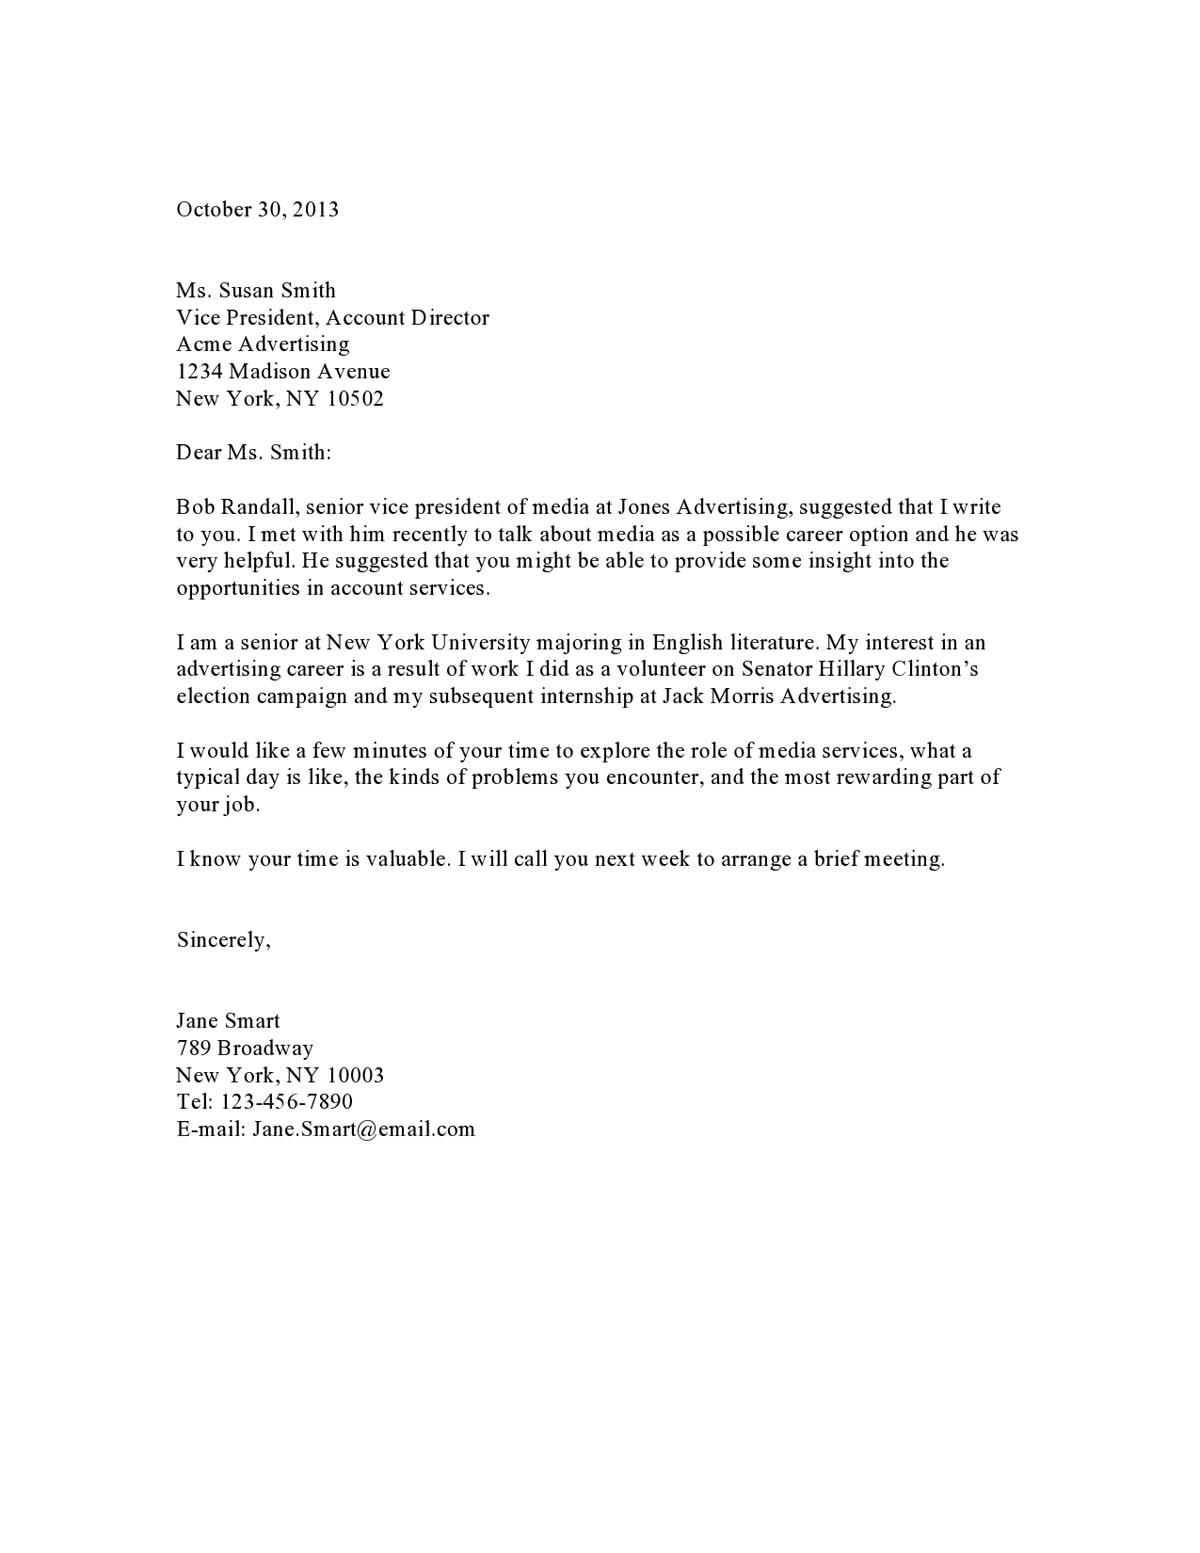 cover letter sampels - sample cover letter for applying a job